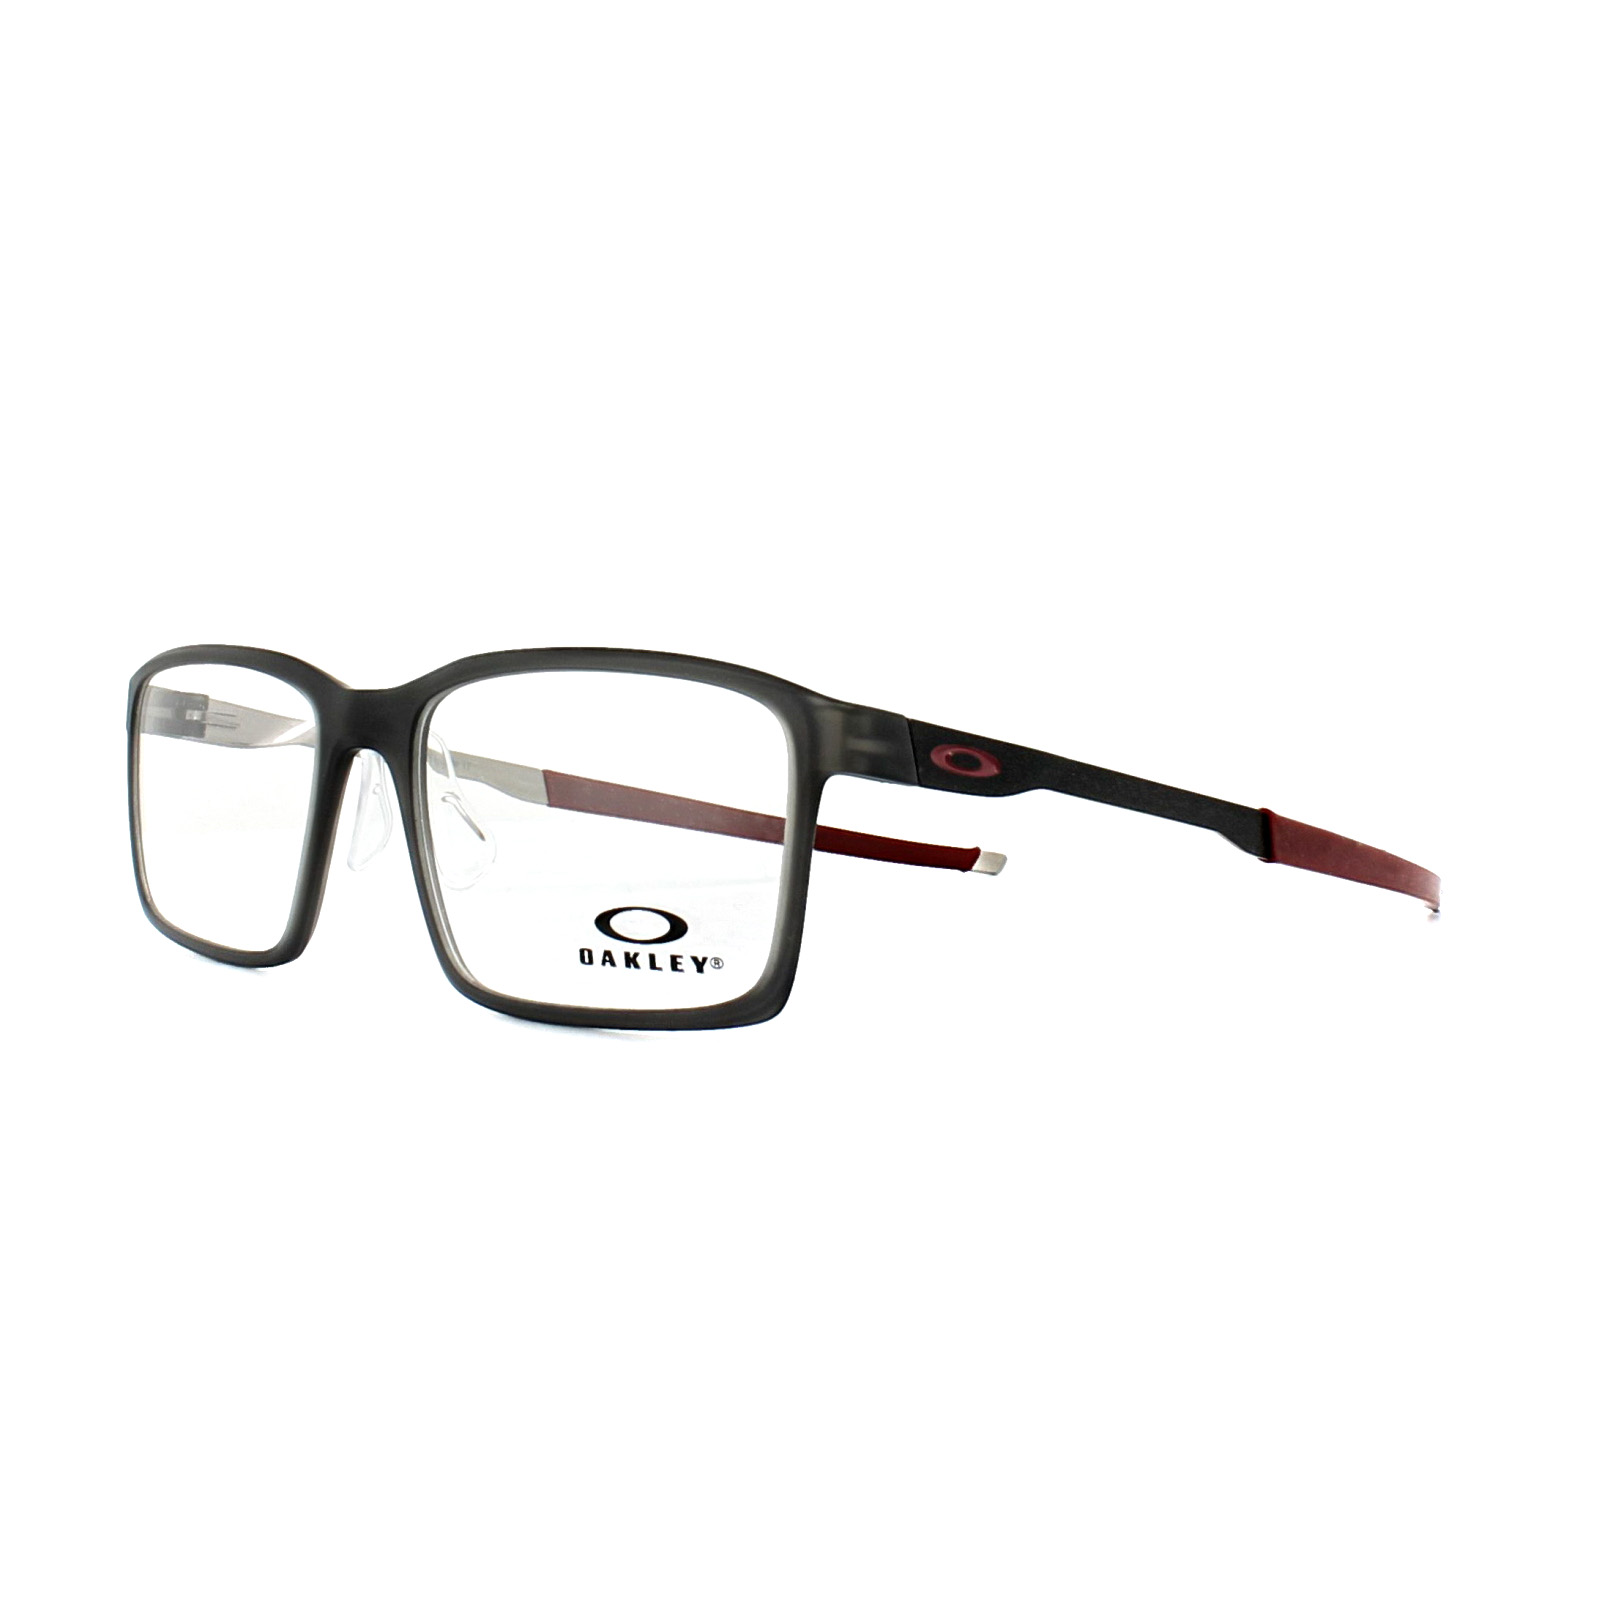 0b8c8691a7 Sentinel Oakley Glasses Frames Steel Line S OX8097-02 Matt Black Ink 54mm  Mens